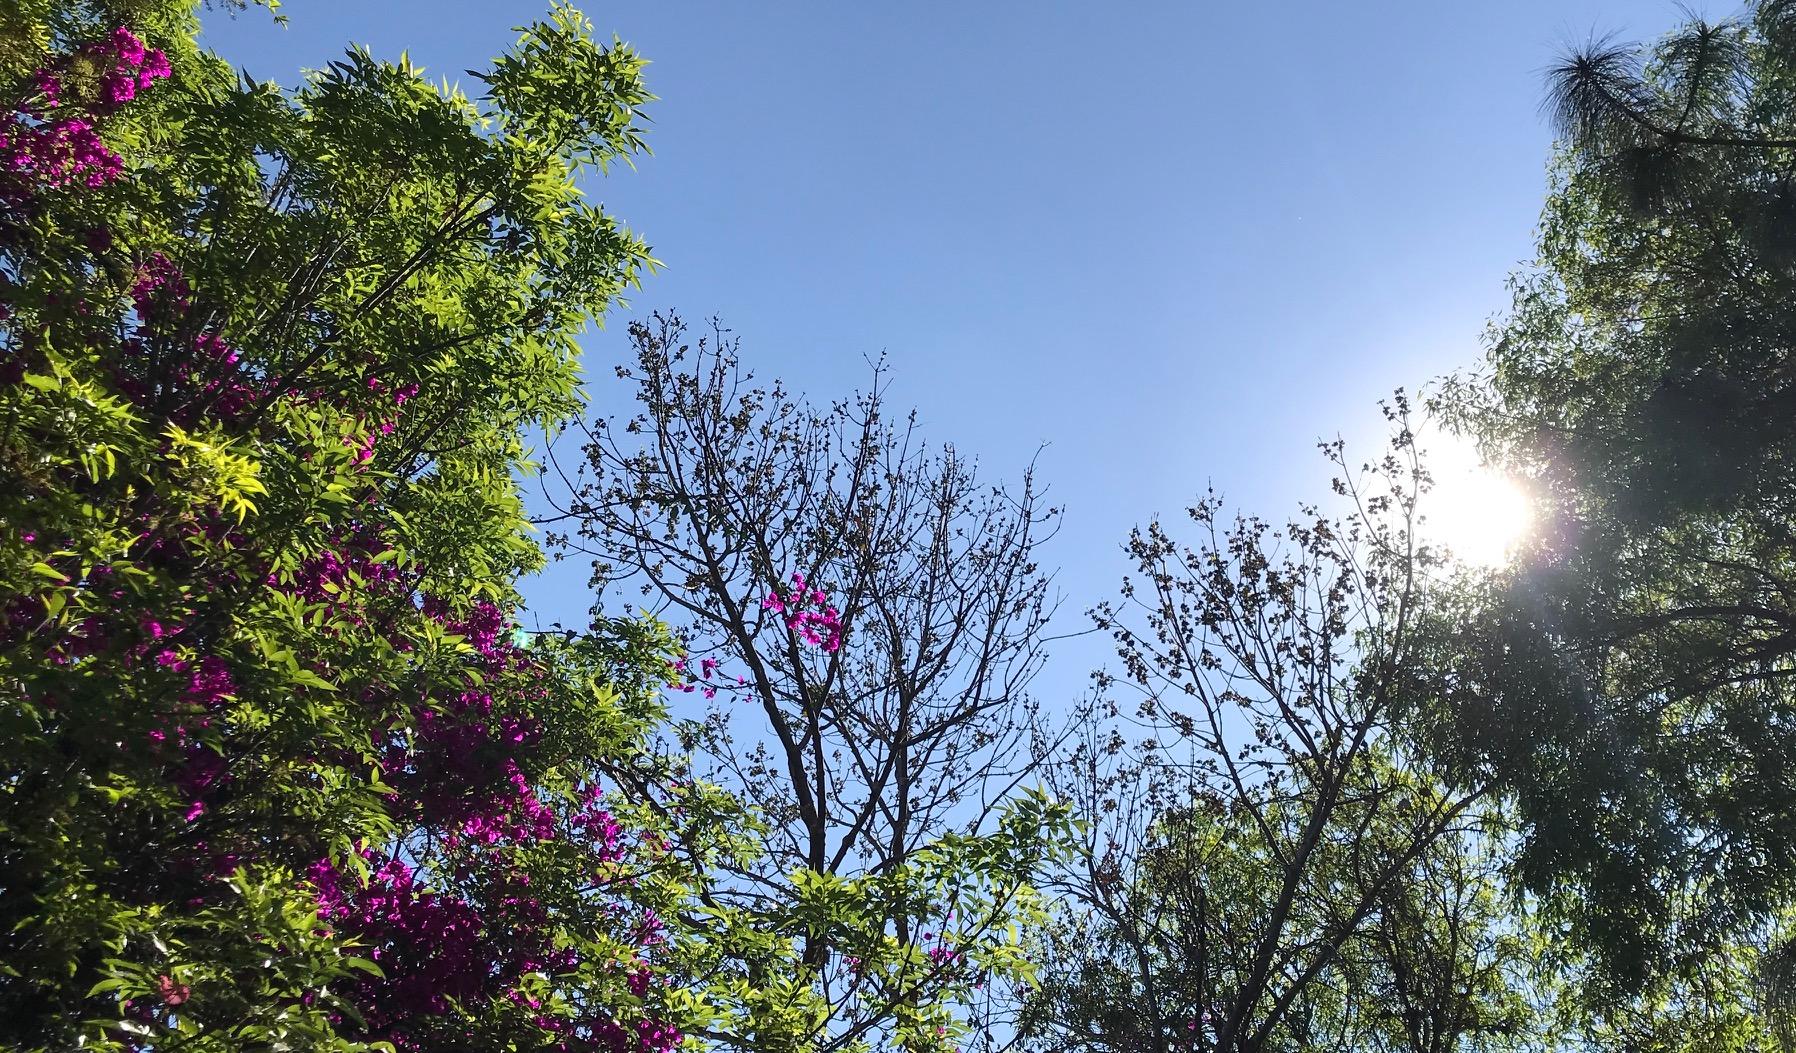 The Trees, The Sun, TheSky